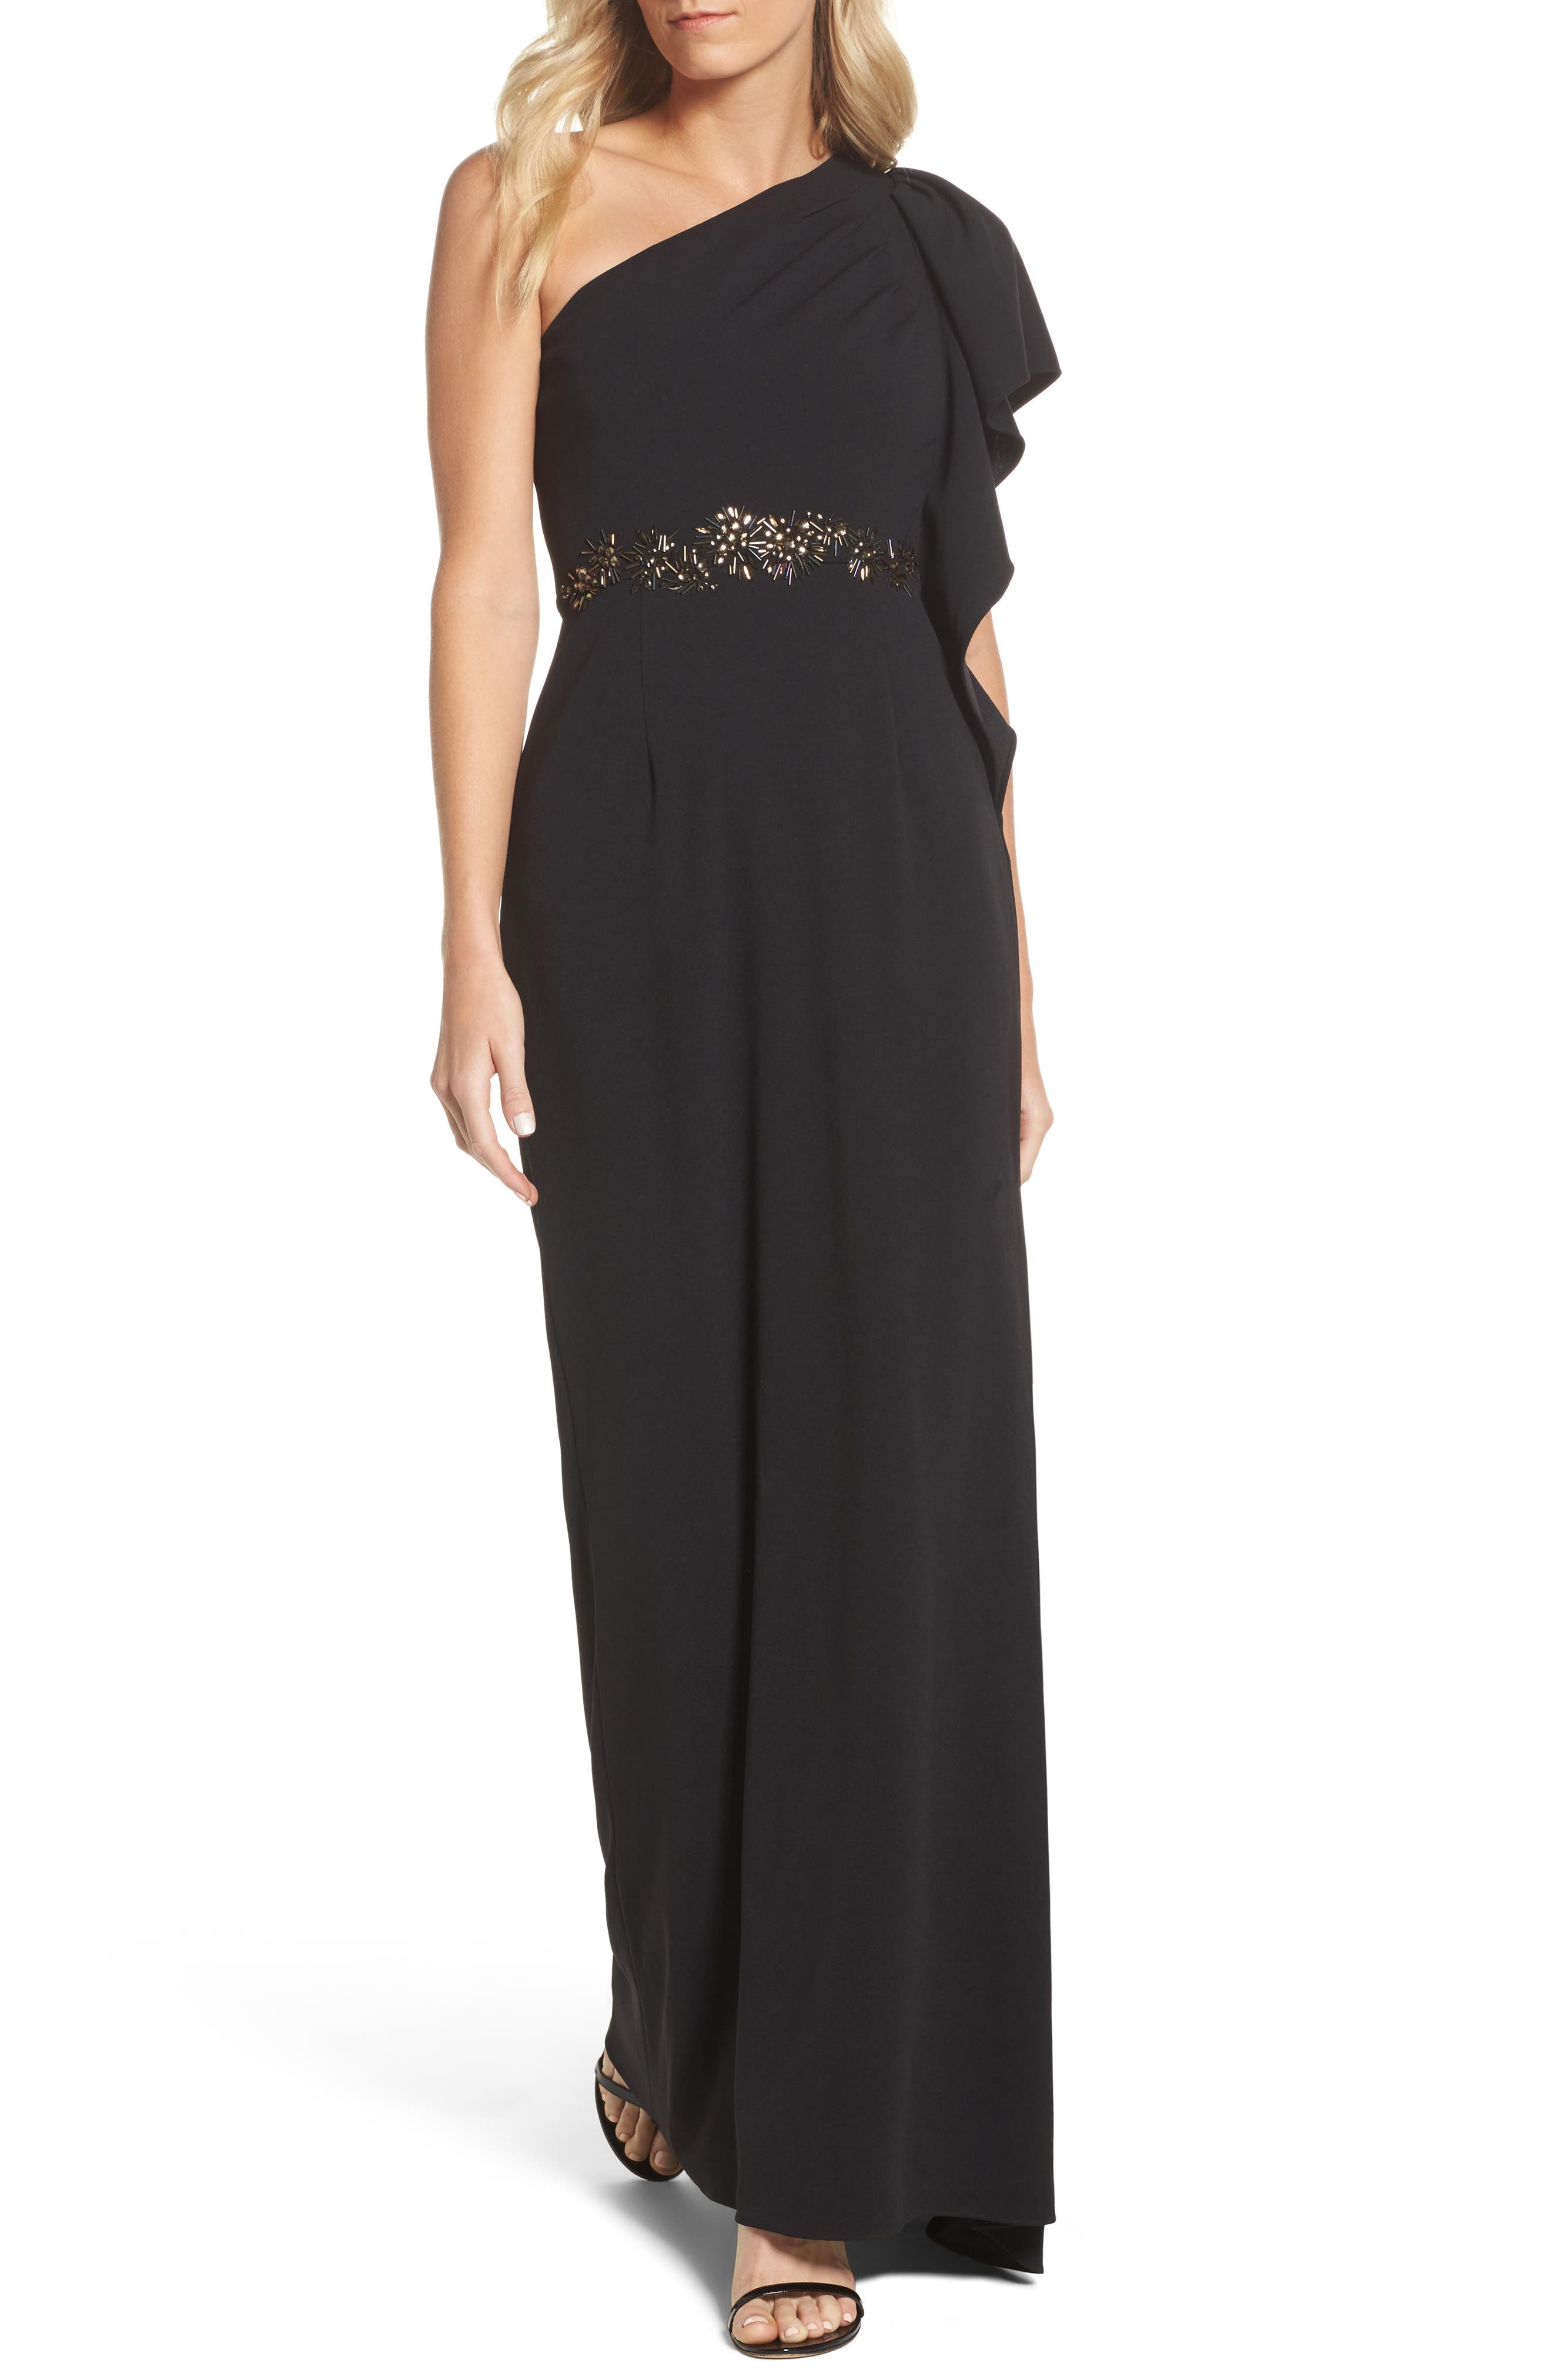 Alternate Image 1 Selected - Adrianna Papell Beaded One-Shoulder Crepe Gown